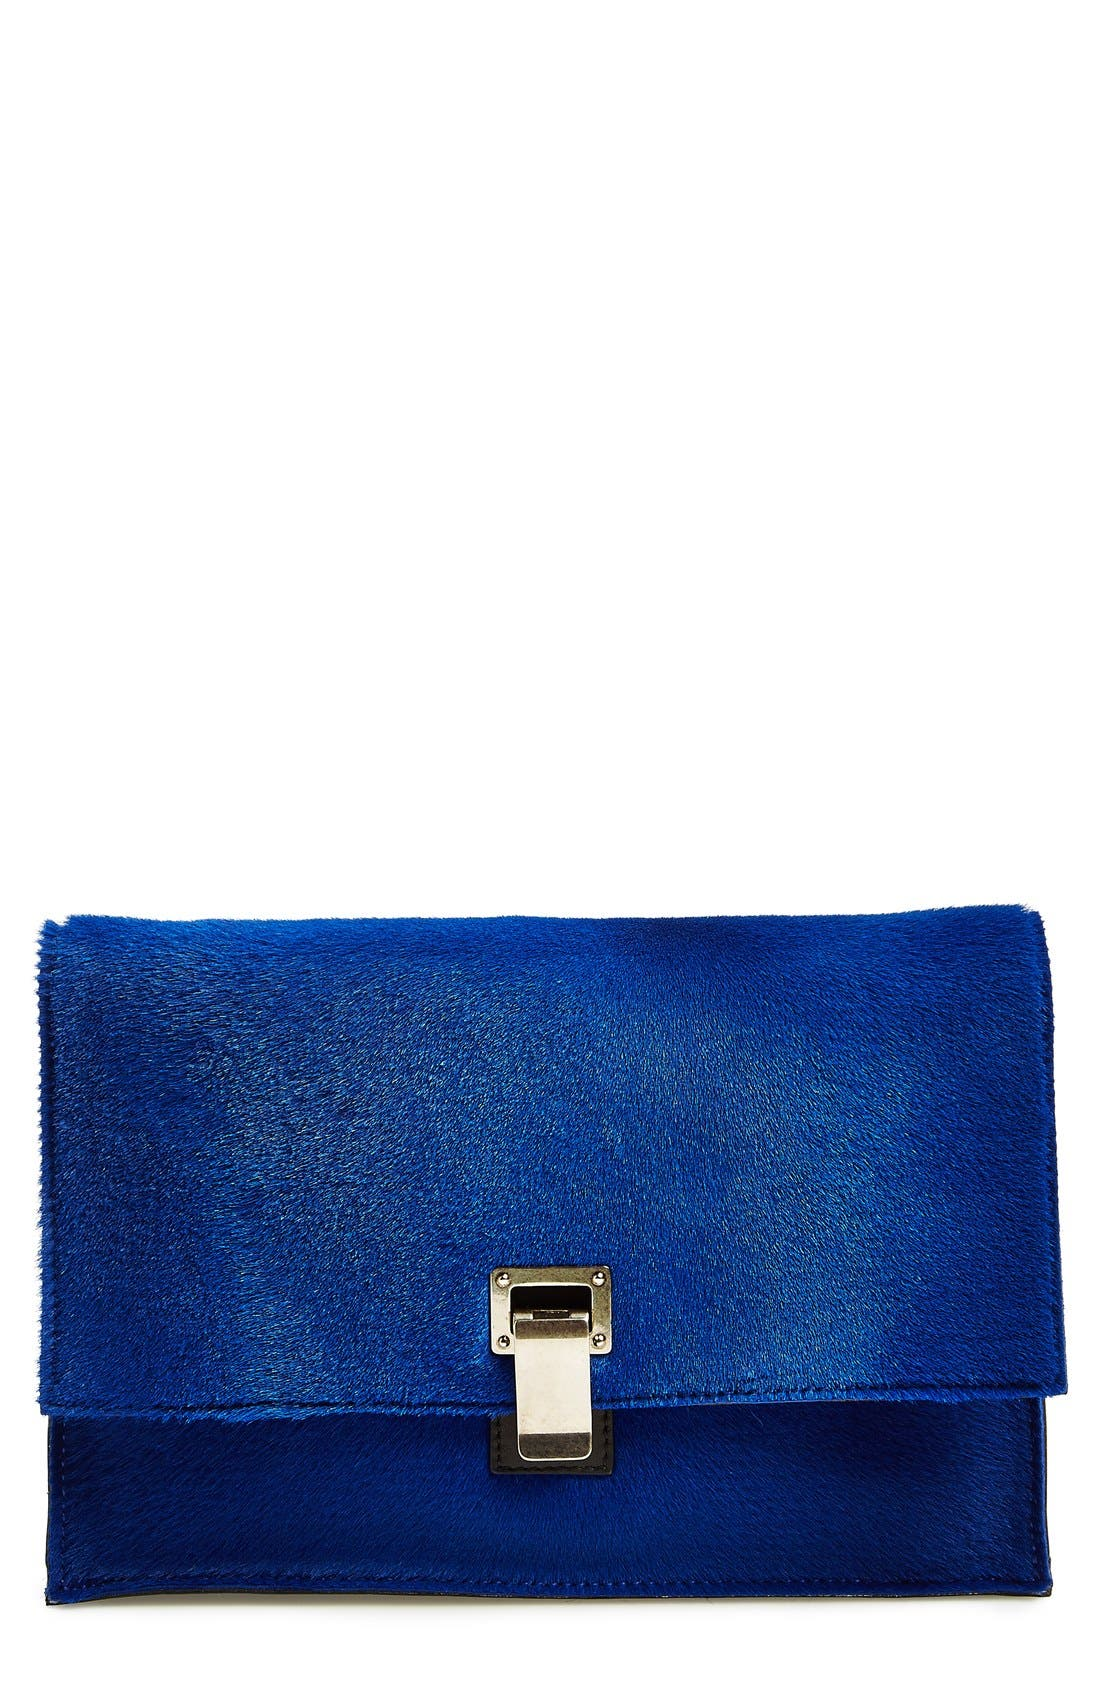 Alternate Image 1 Selected - Proenza Schouler 'Lunch Bag - Small' Shearling & Leather Clutch